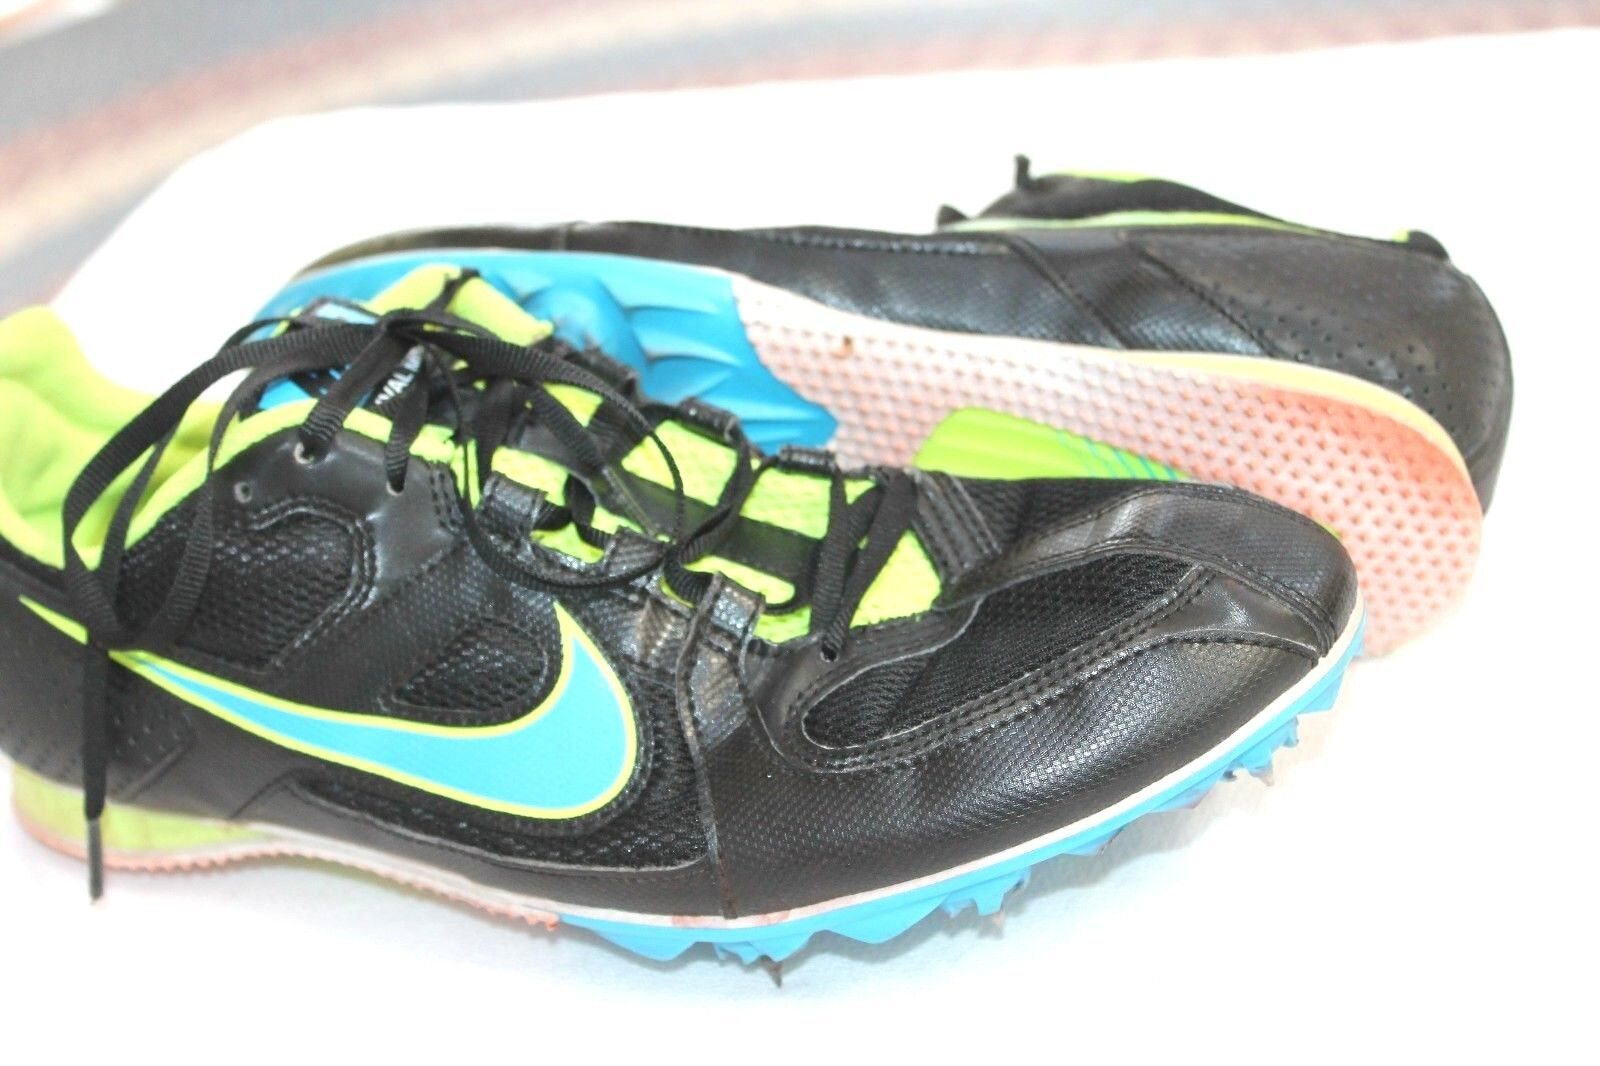 NIKE NIKE MENS ZOOM RIVAL 468648 Running Track Cleats Sneakers Shoes Comfortable  New shoes for men and women, limited time discount